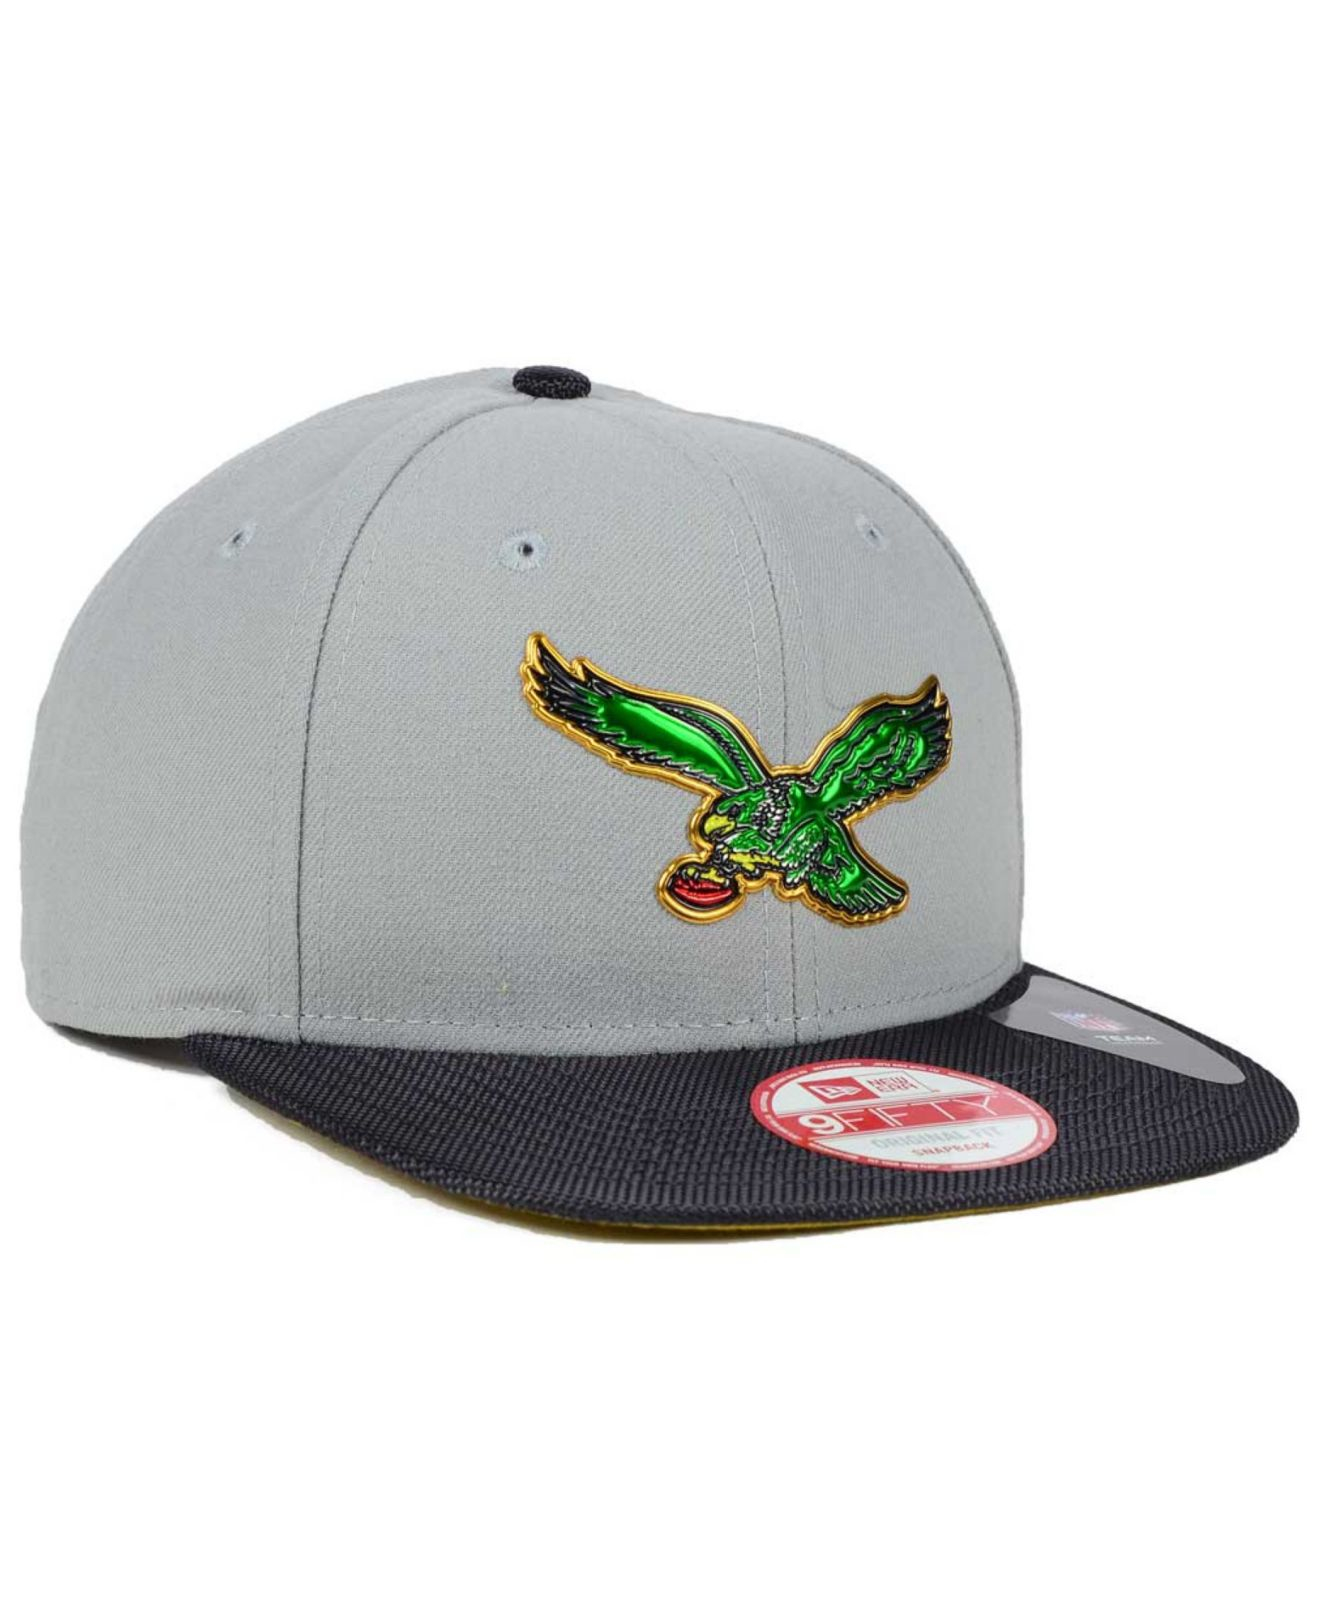 8508976270f Lyst - KTZ Philadelphia Eagles Gold Collection 9fifty Snapback Cap ...